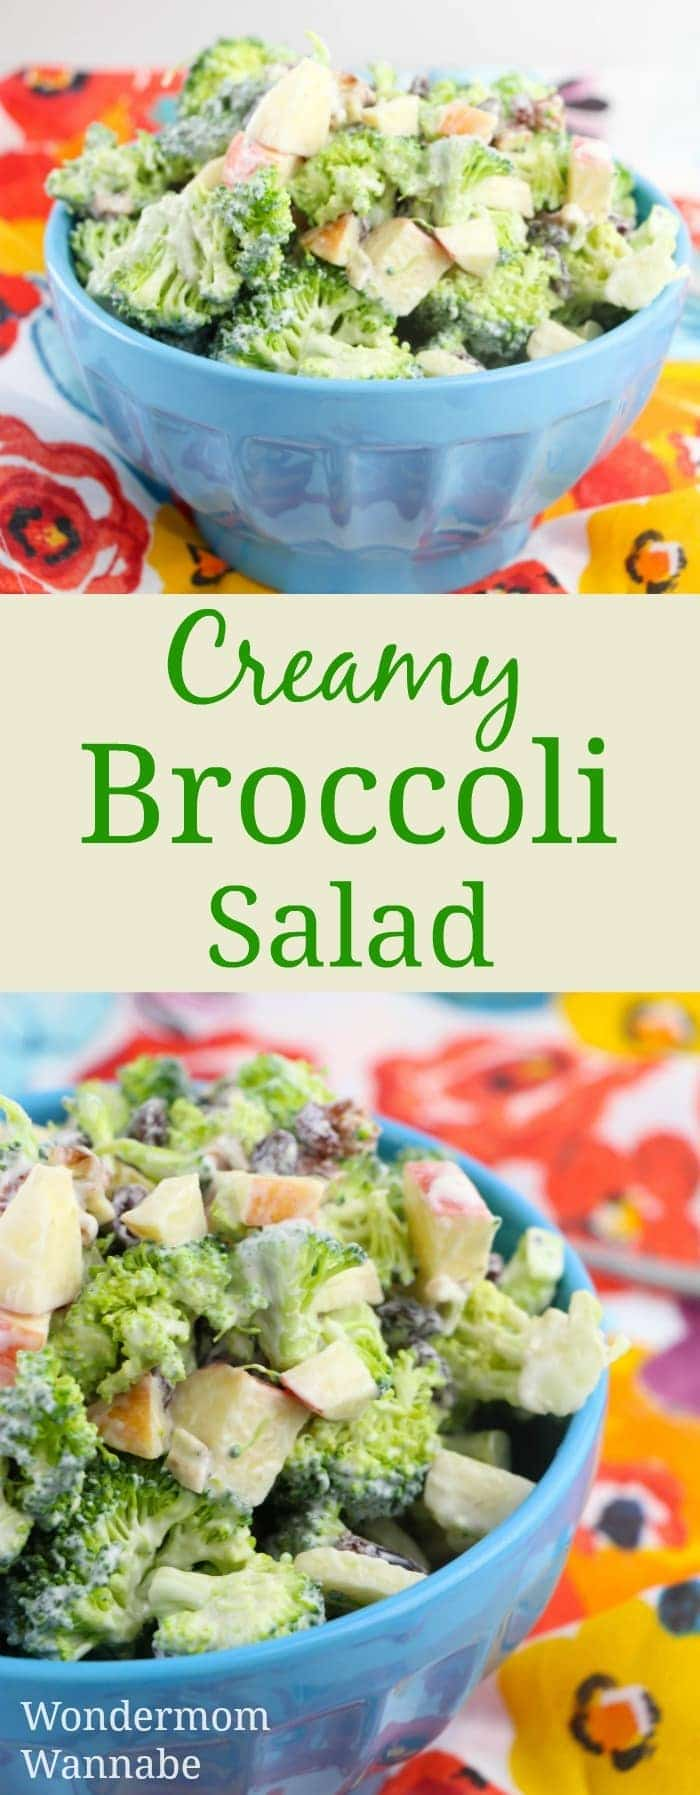 This creamy broccoli salad recipe is so easy and always a hit at picnics, potlucks and the dinner table.